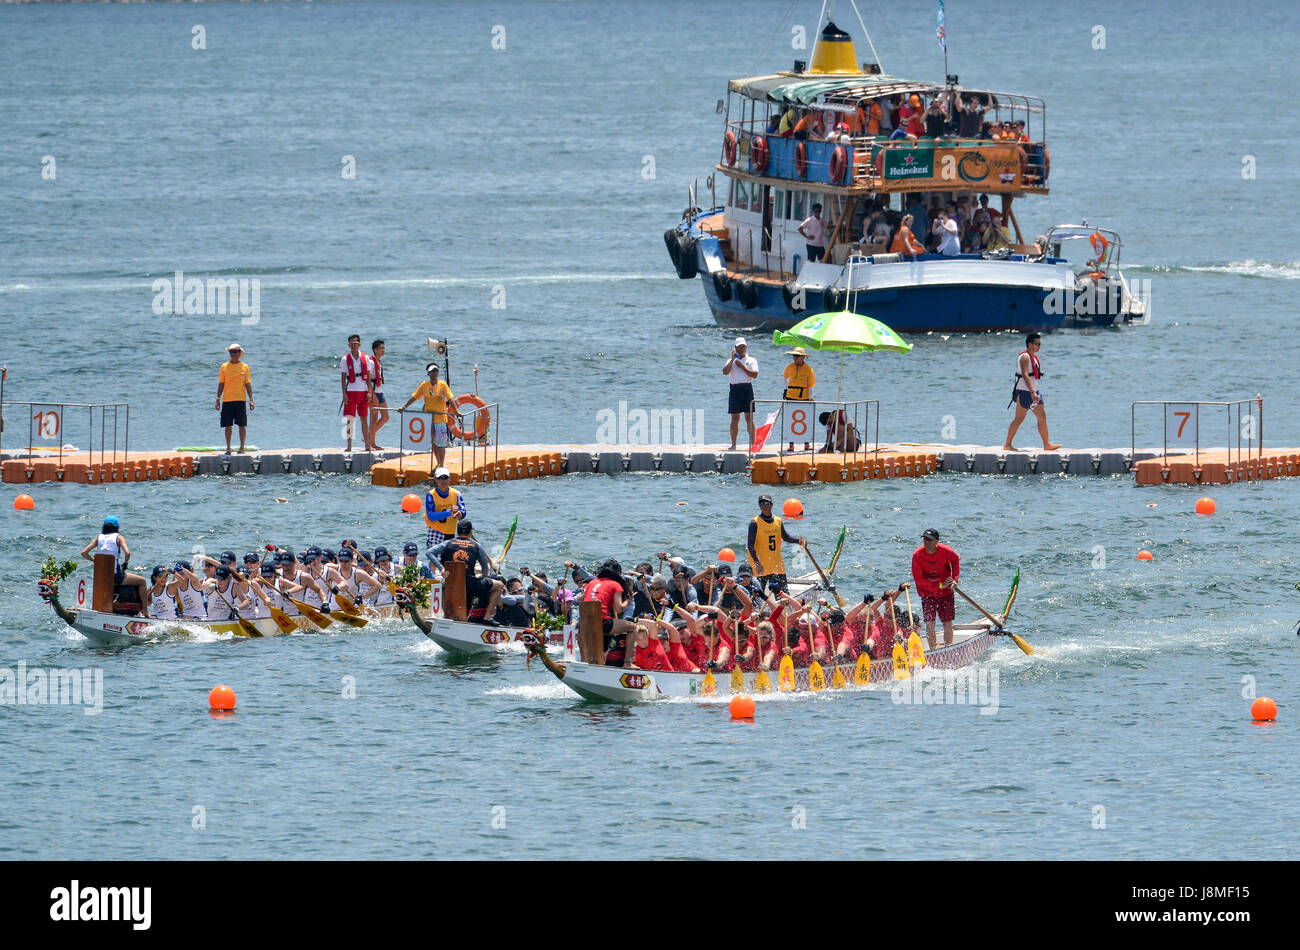 A spectator boat lines up by the race start line.Annual International Dragon Boat races at Stanley Beach, Hong Kong - Stock Image